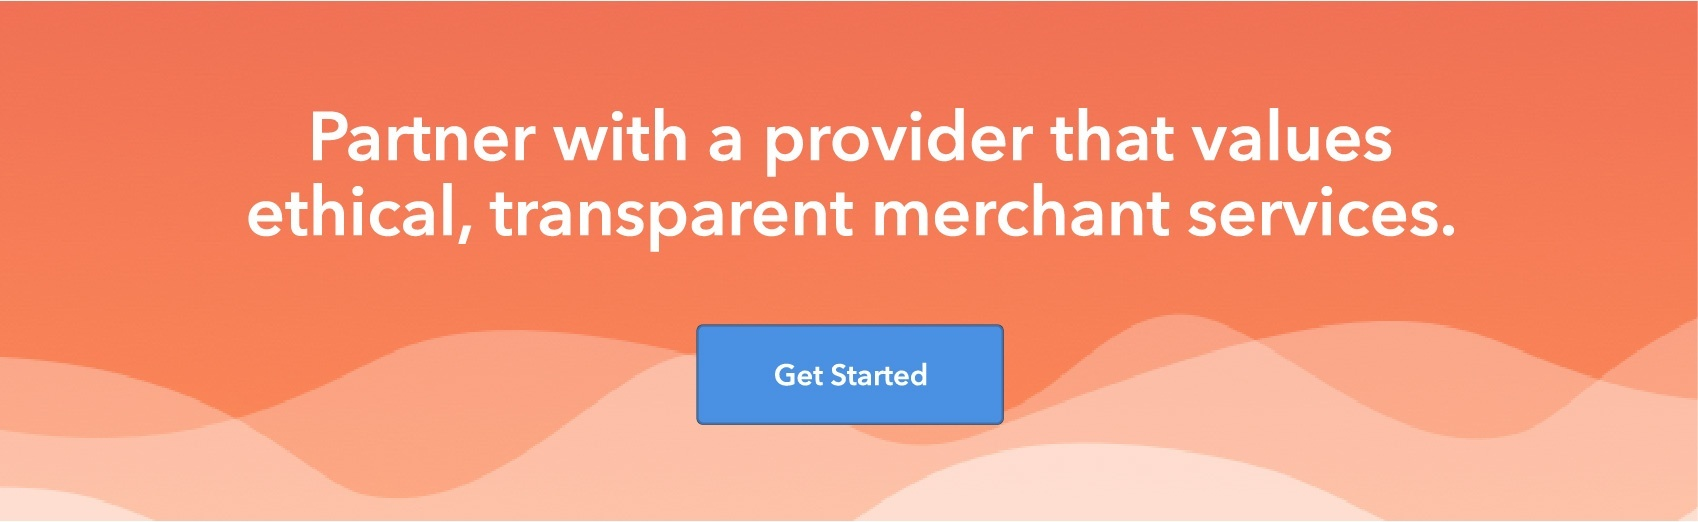 Partner with a provider that values ethical, transparent merchant services. Get Started.